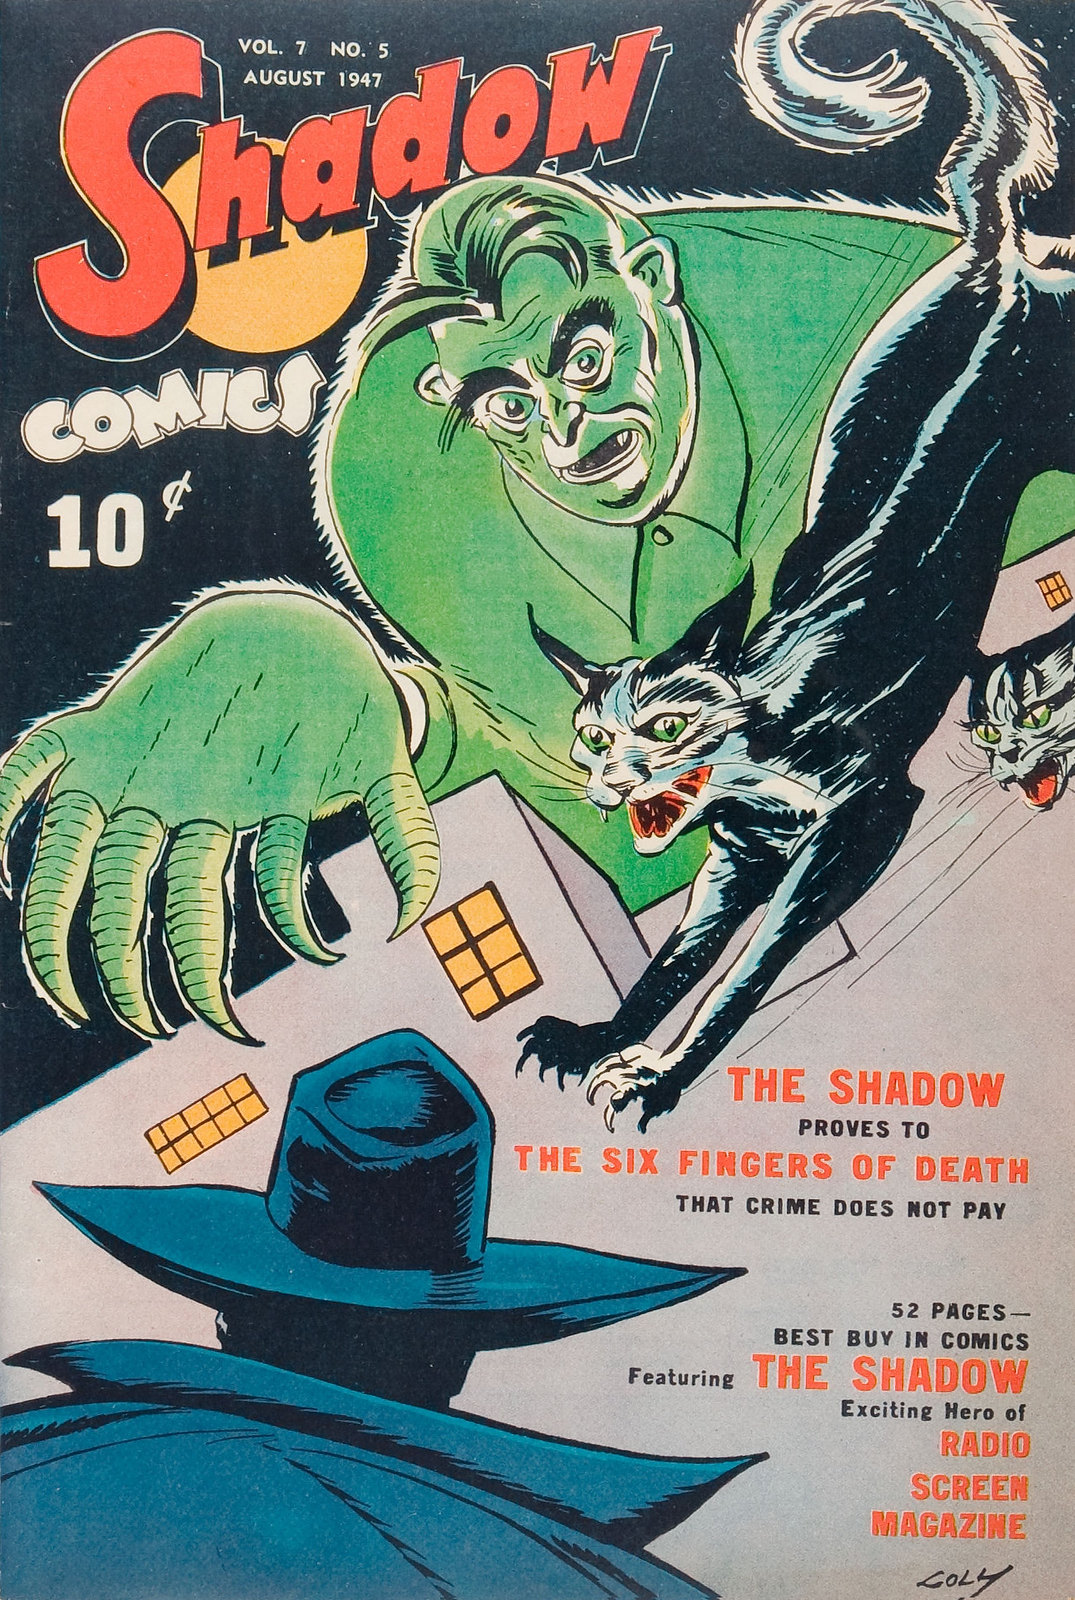 Shadow Comics V7#5 (Street & Smith, 1947) Charles Coll Cover